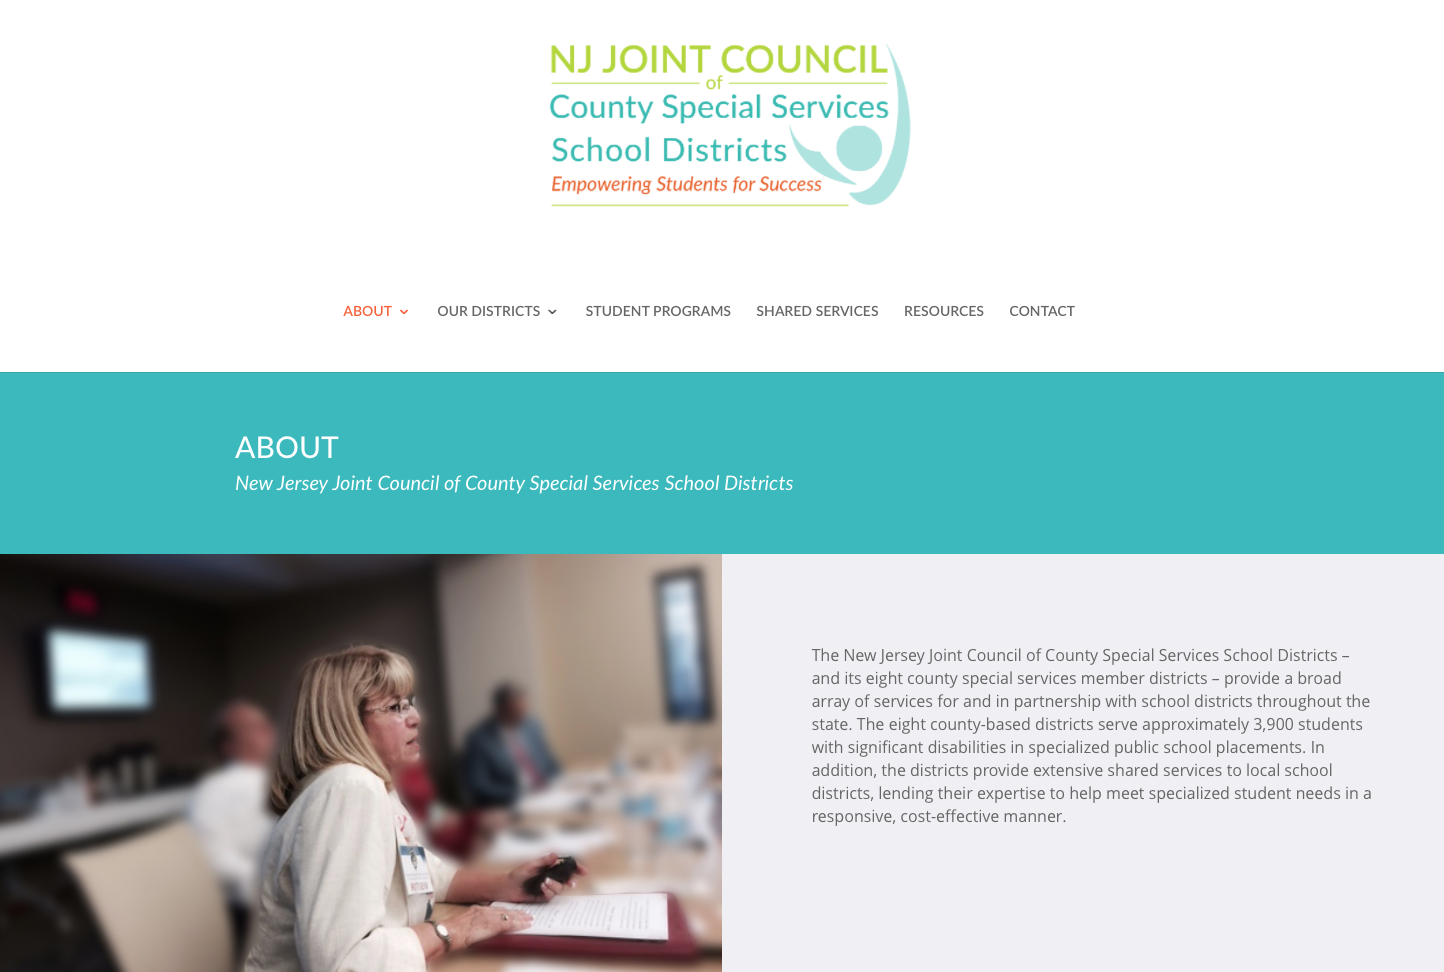 NJ Joint Council Website